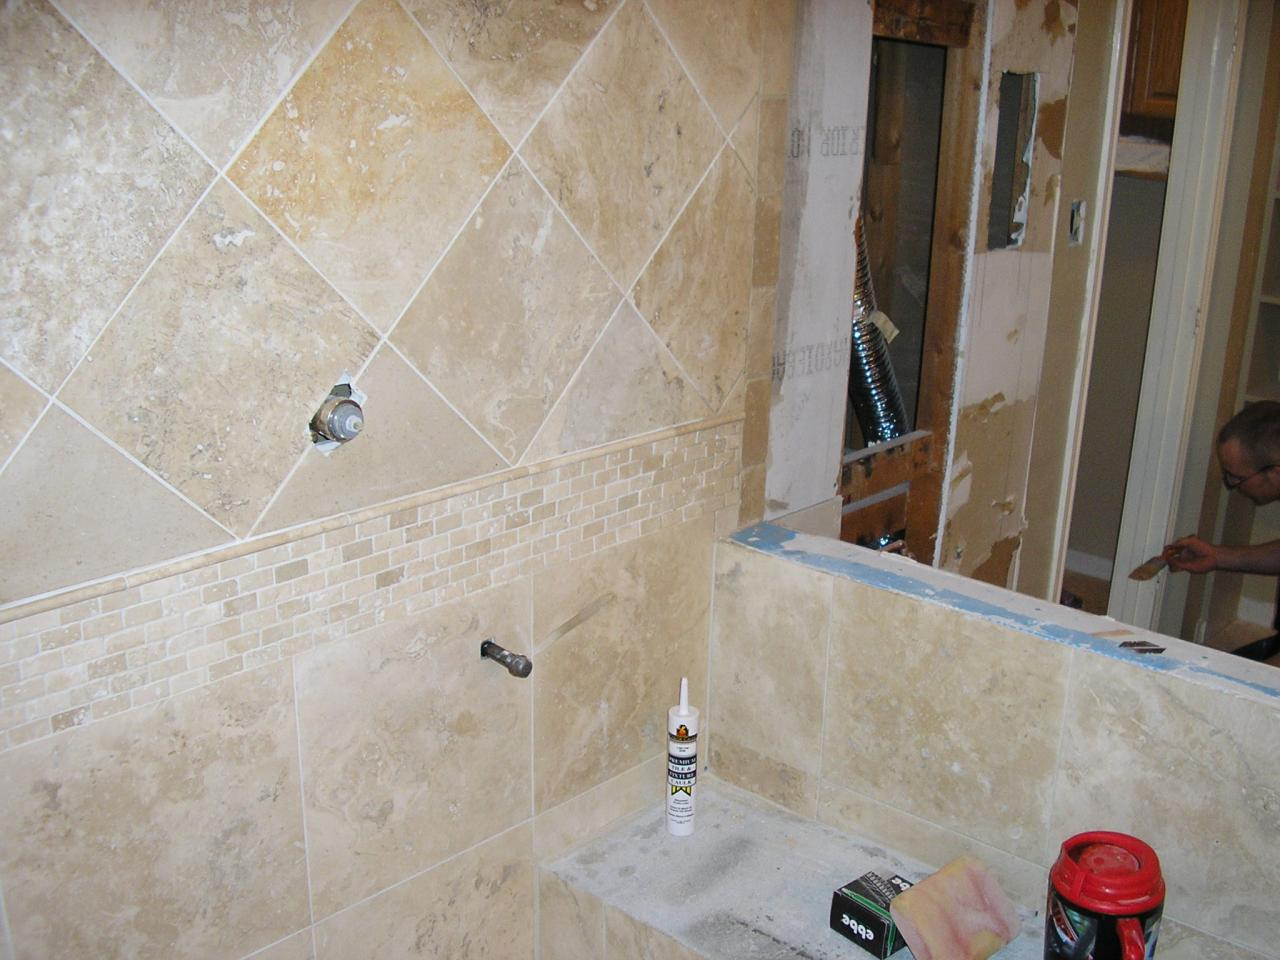 Bathroom 4 - During Job